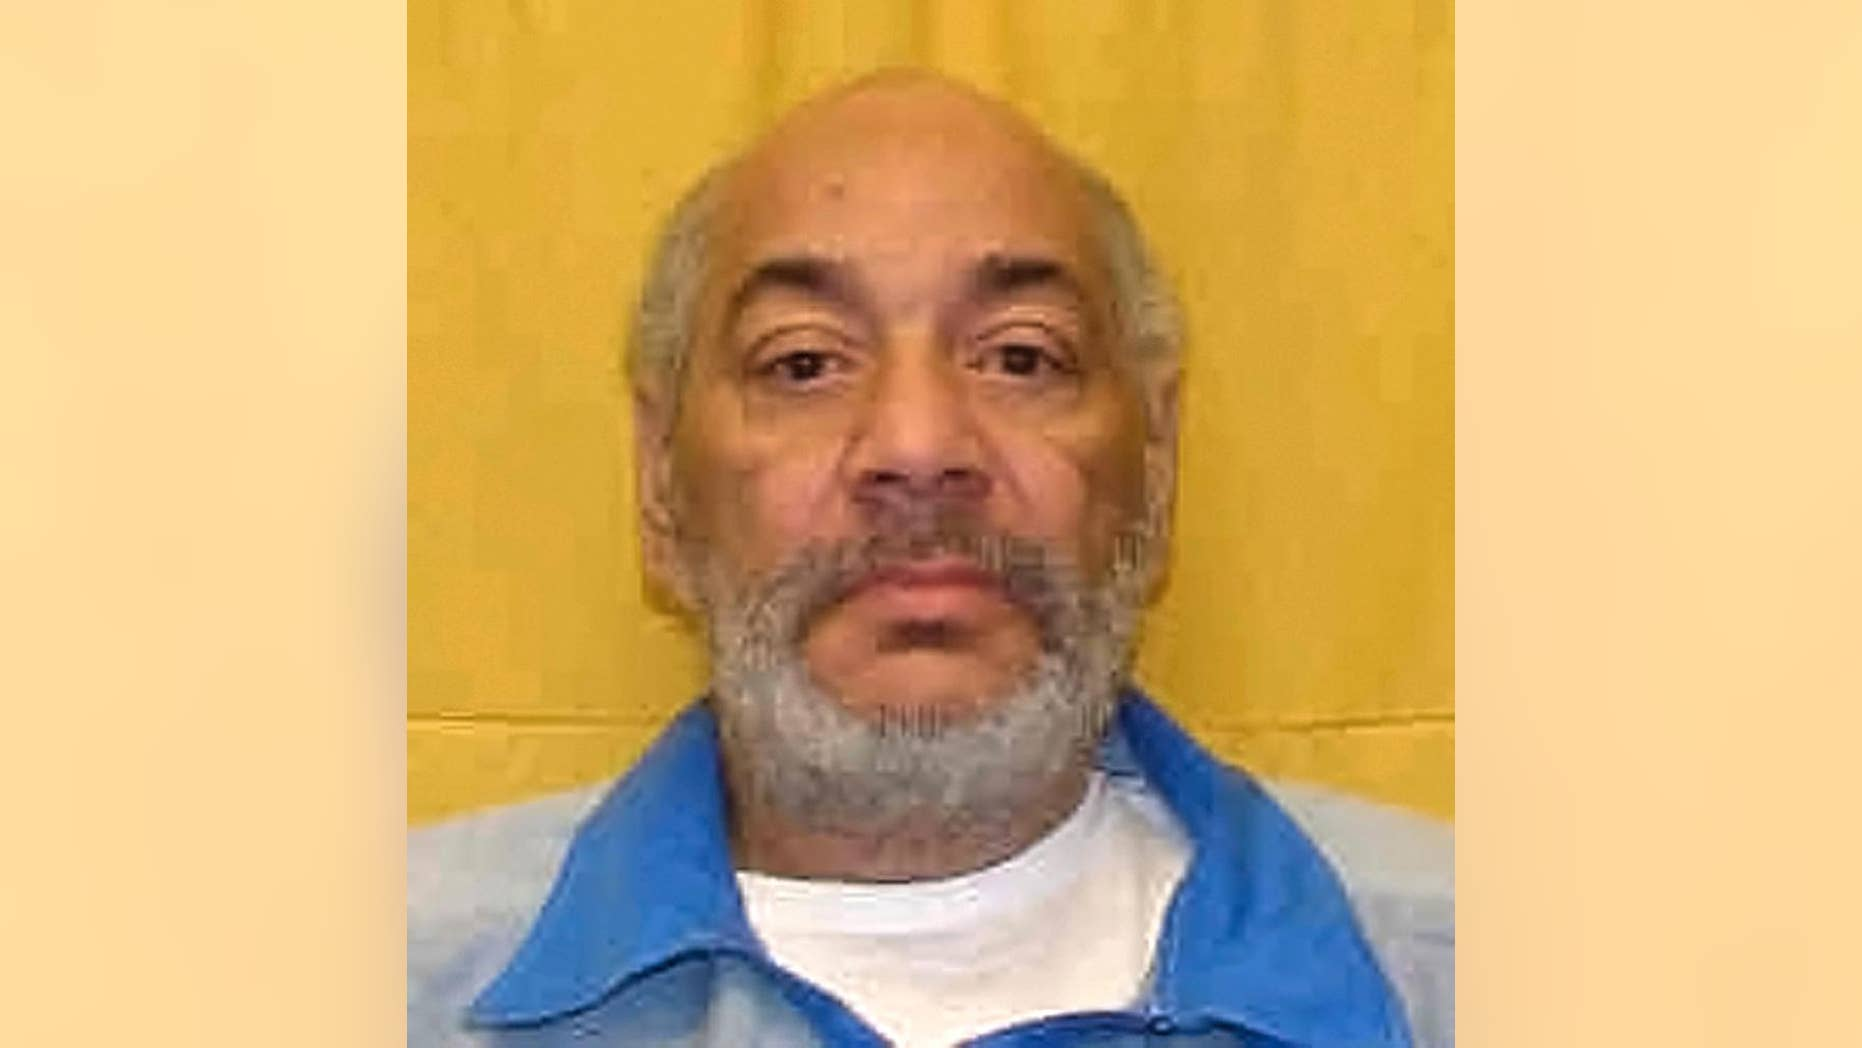 This undated photo provided by the Ohio Department of Rehabilitation and Correction shows David Johnson, who received an eight-year sentence for sexual battery. The Ross County, Ohio, Coroner's Office identified Johnson as the inmate fatally strangled Wednesday, Feb. 1, 2017, while riding in a transport van to the Ross County Correctional Institution with other prisoners and guards, after Johnson had been taken to Columbus, Ohio, for medical treatment, according to Ross County Prosecutor Matthew Schmidt. (Ohio Department of Rehabilitation and Correction via AP)